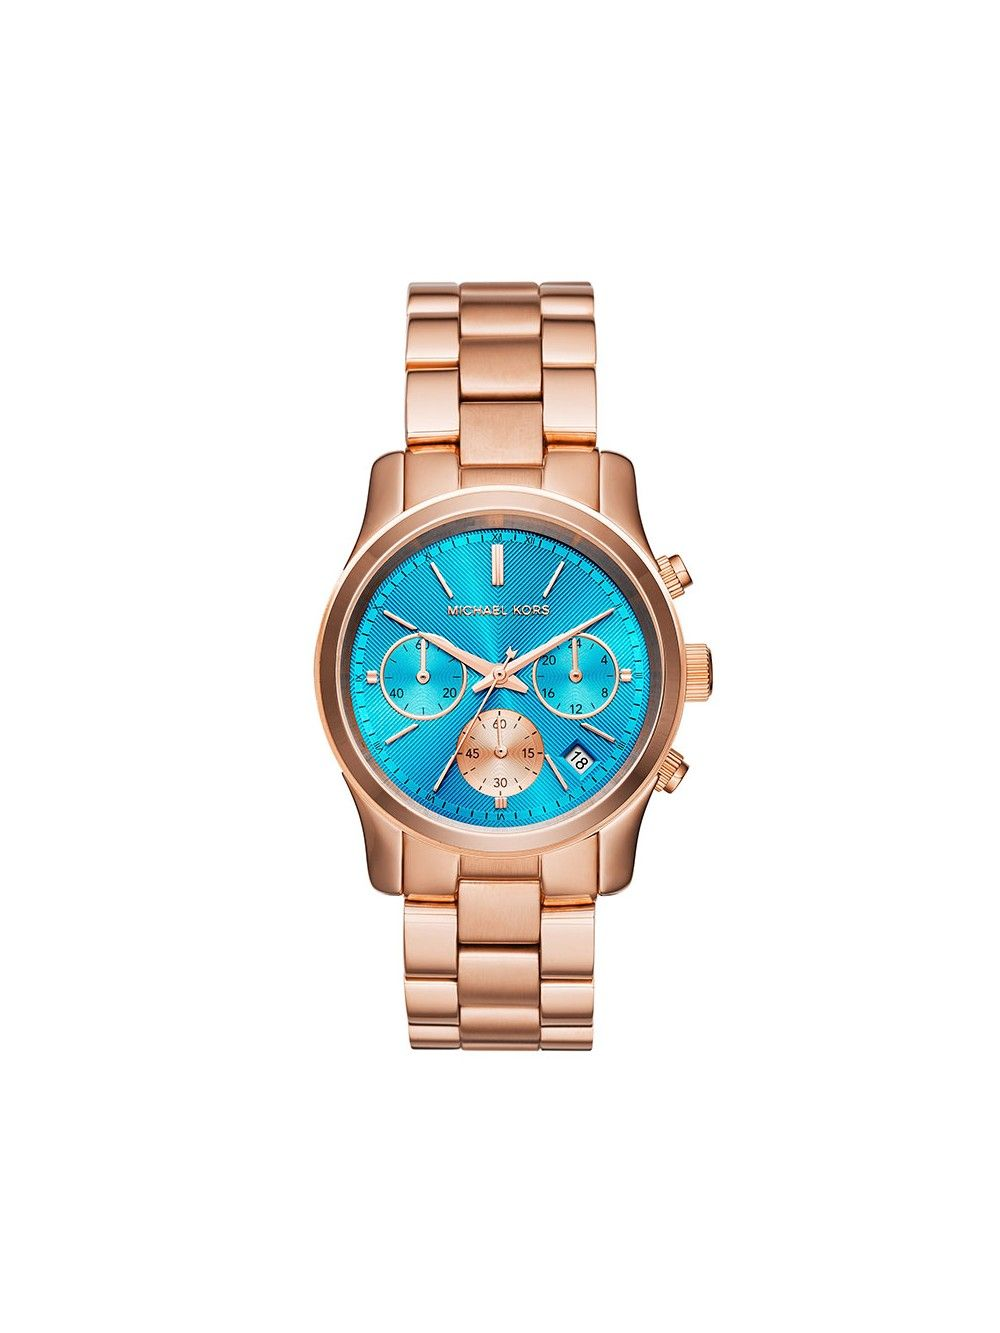 05cf48a1d311f Michael Kors Blue Dial Rose Gold Tone Chronograph Ladies Watch MK6164